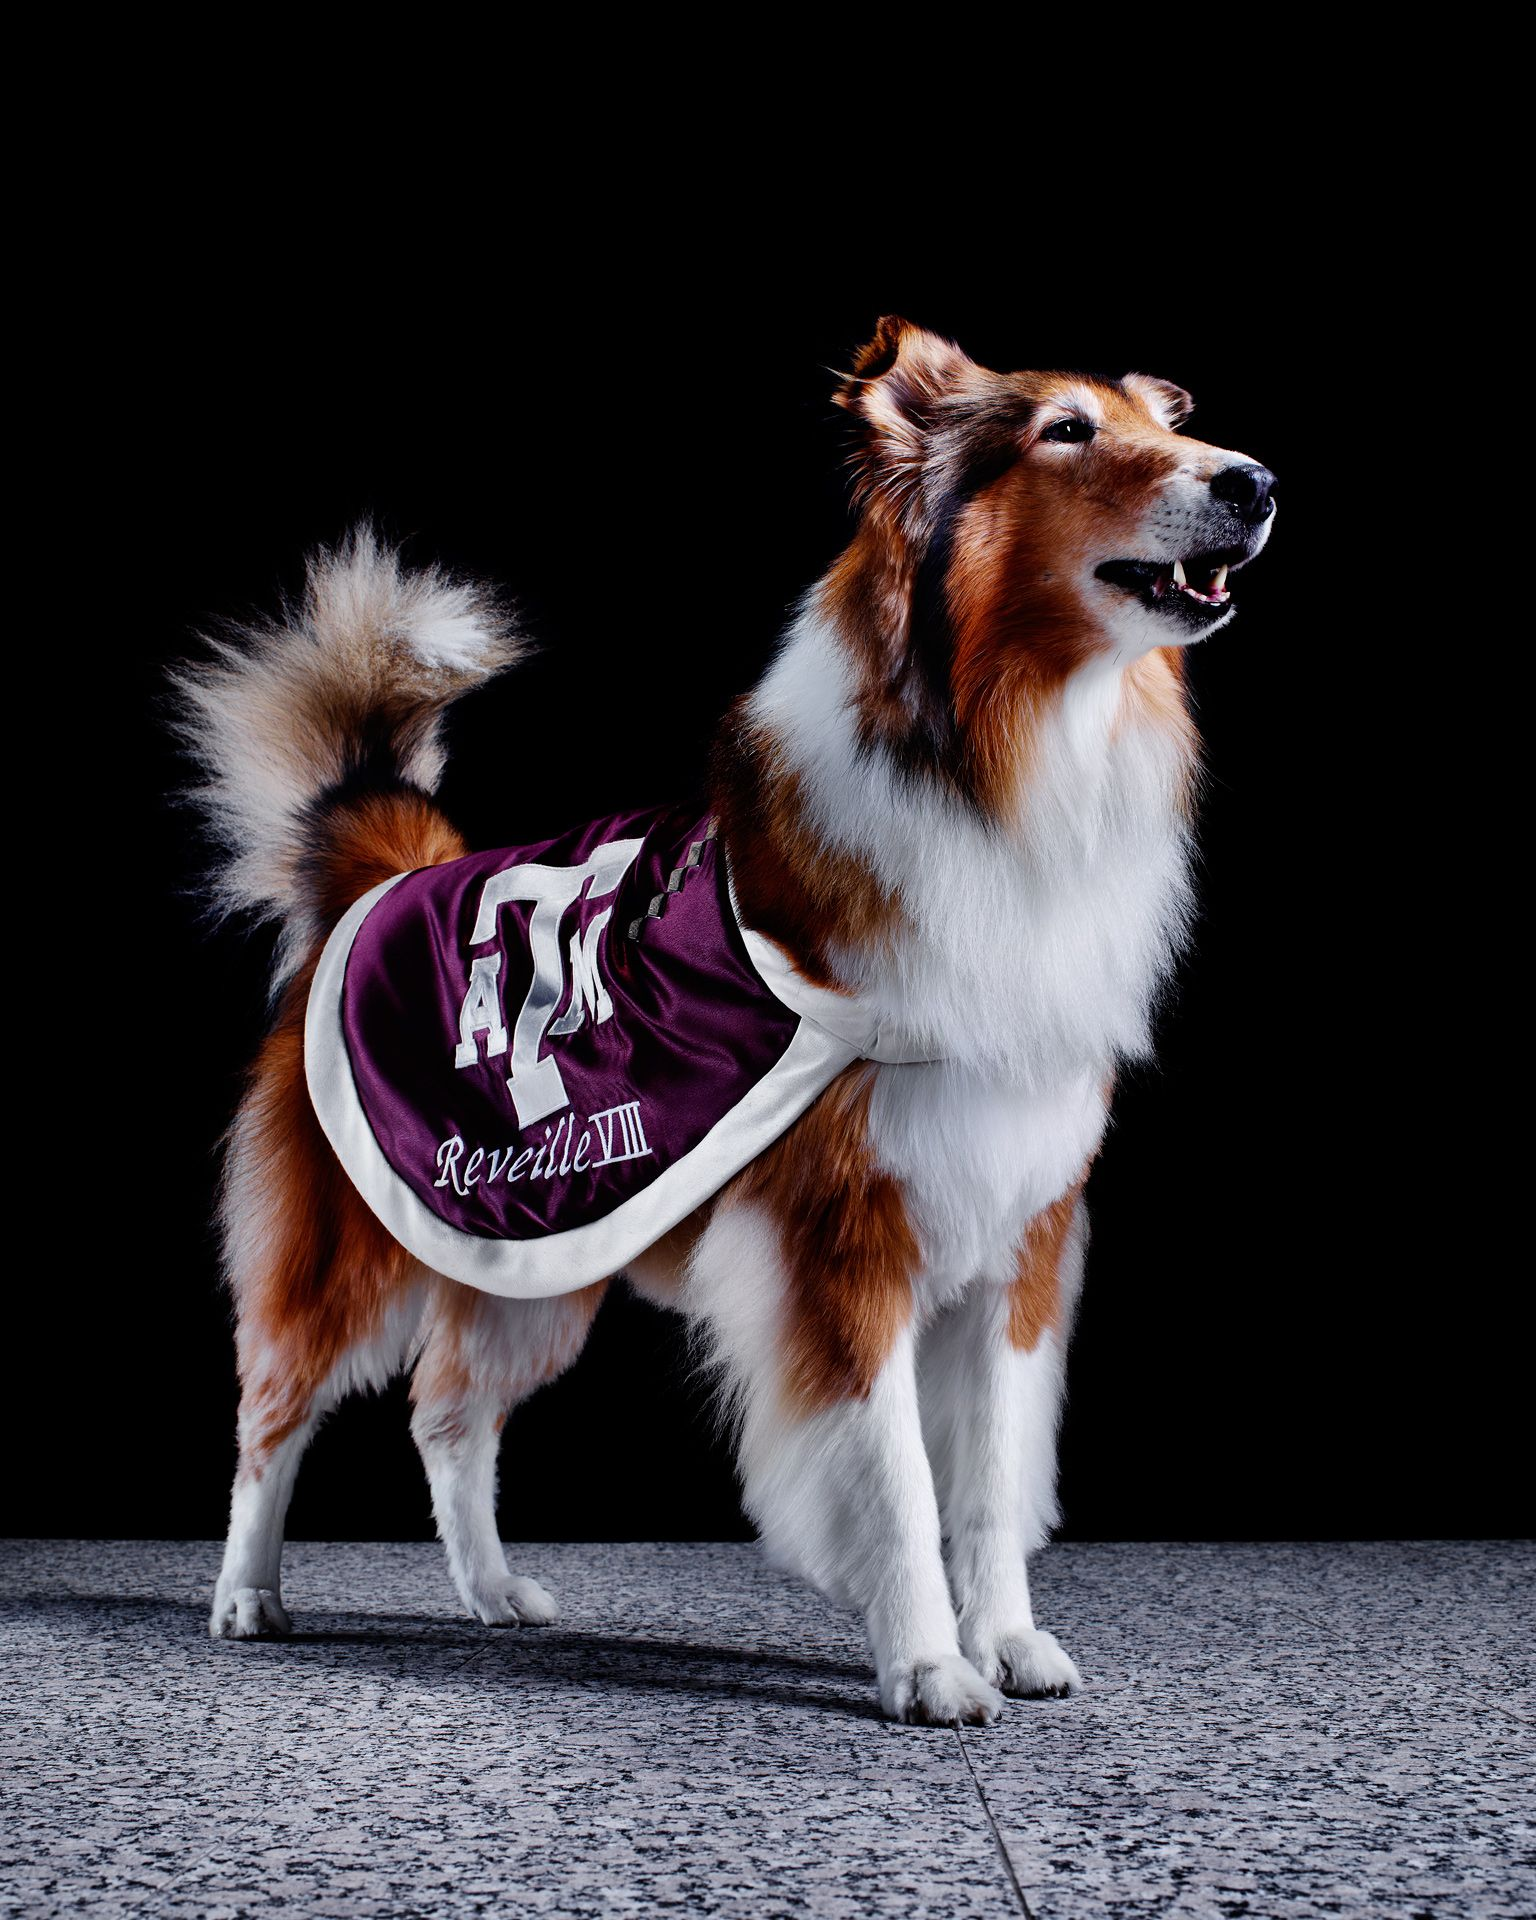 Mascots Of The Southeastern Conference Texas Aggies Texas A M Football Texas A M